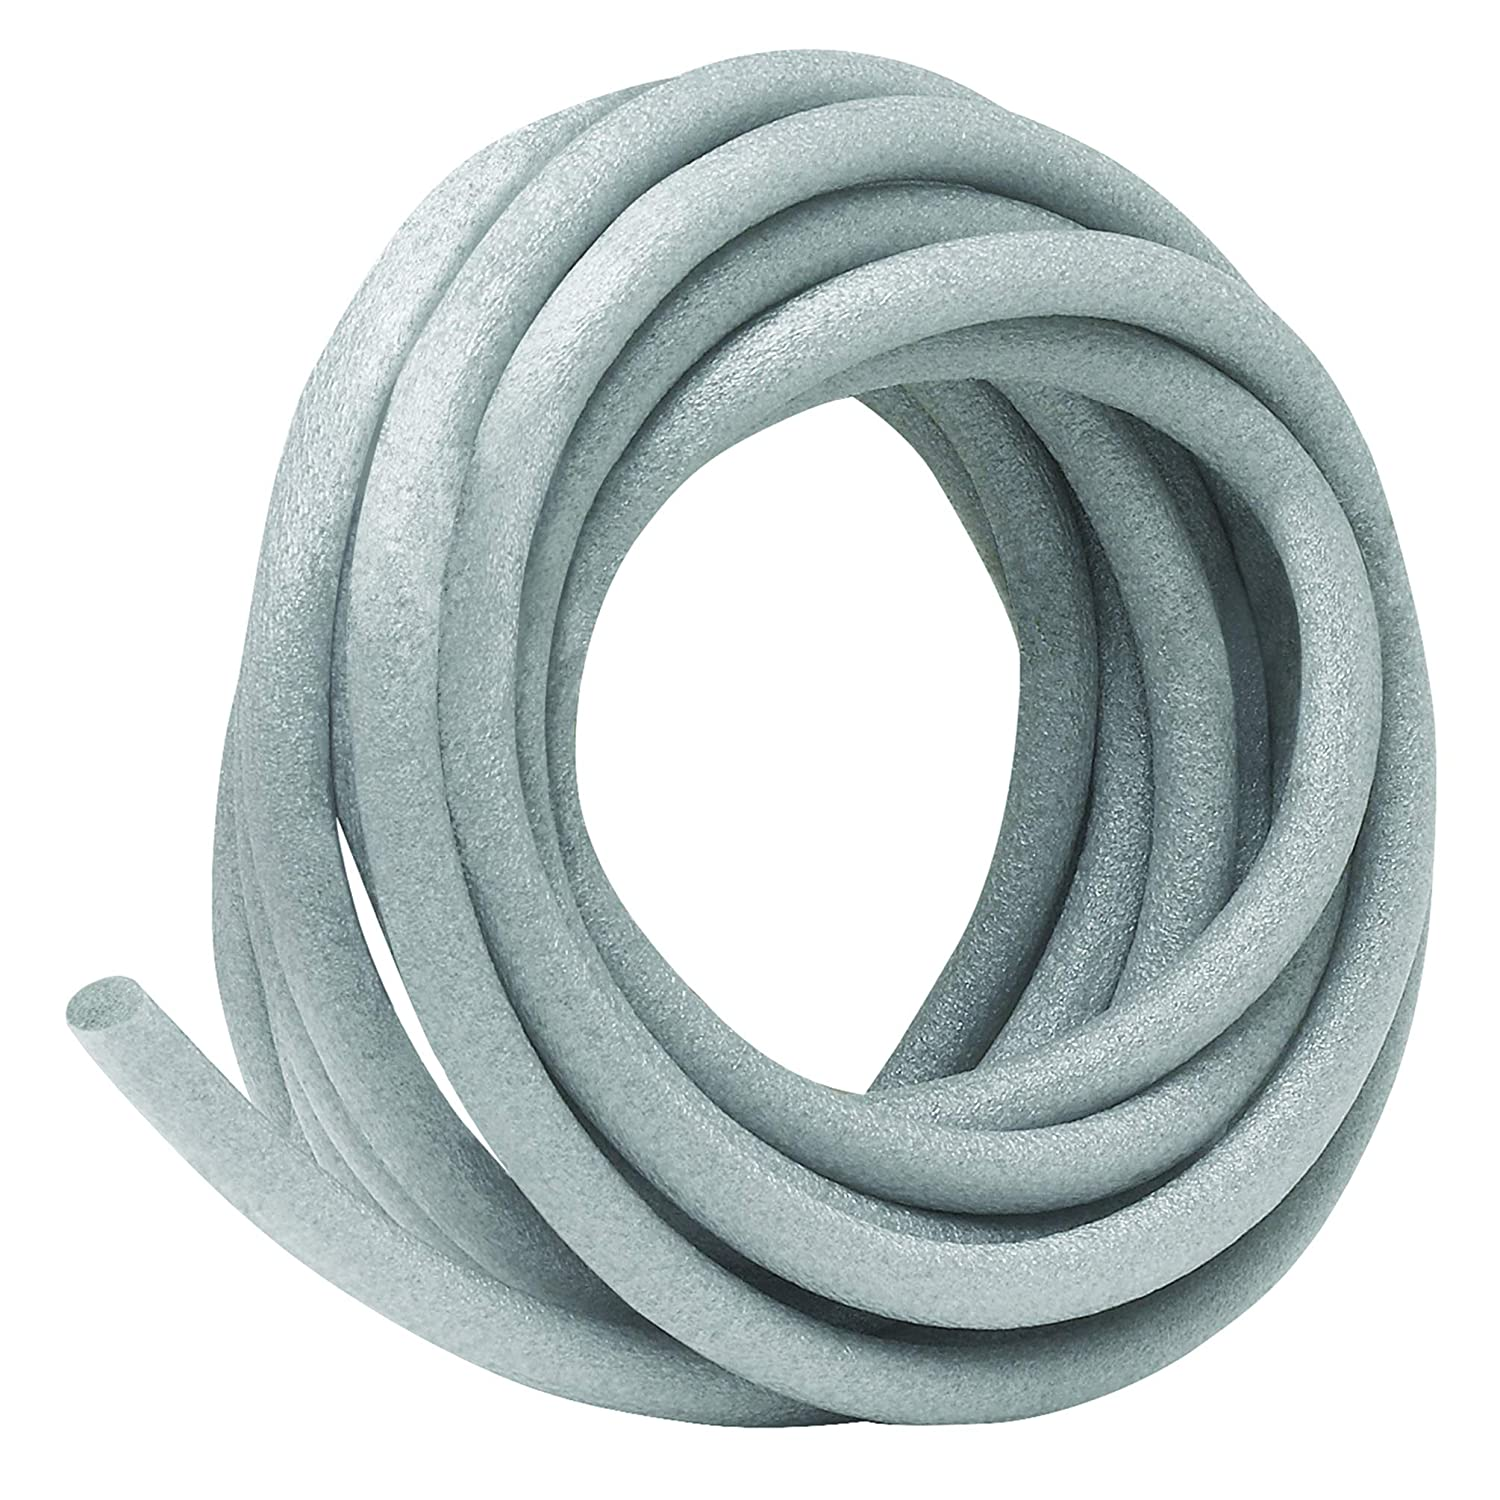 Frost King C22CP Caulk Saver Bulk Contractor Pack, 1/2' Diameter x 250' Long, Grey 1/2 Diameter x 250' Long